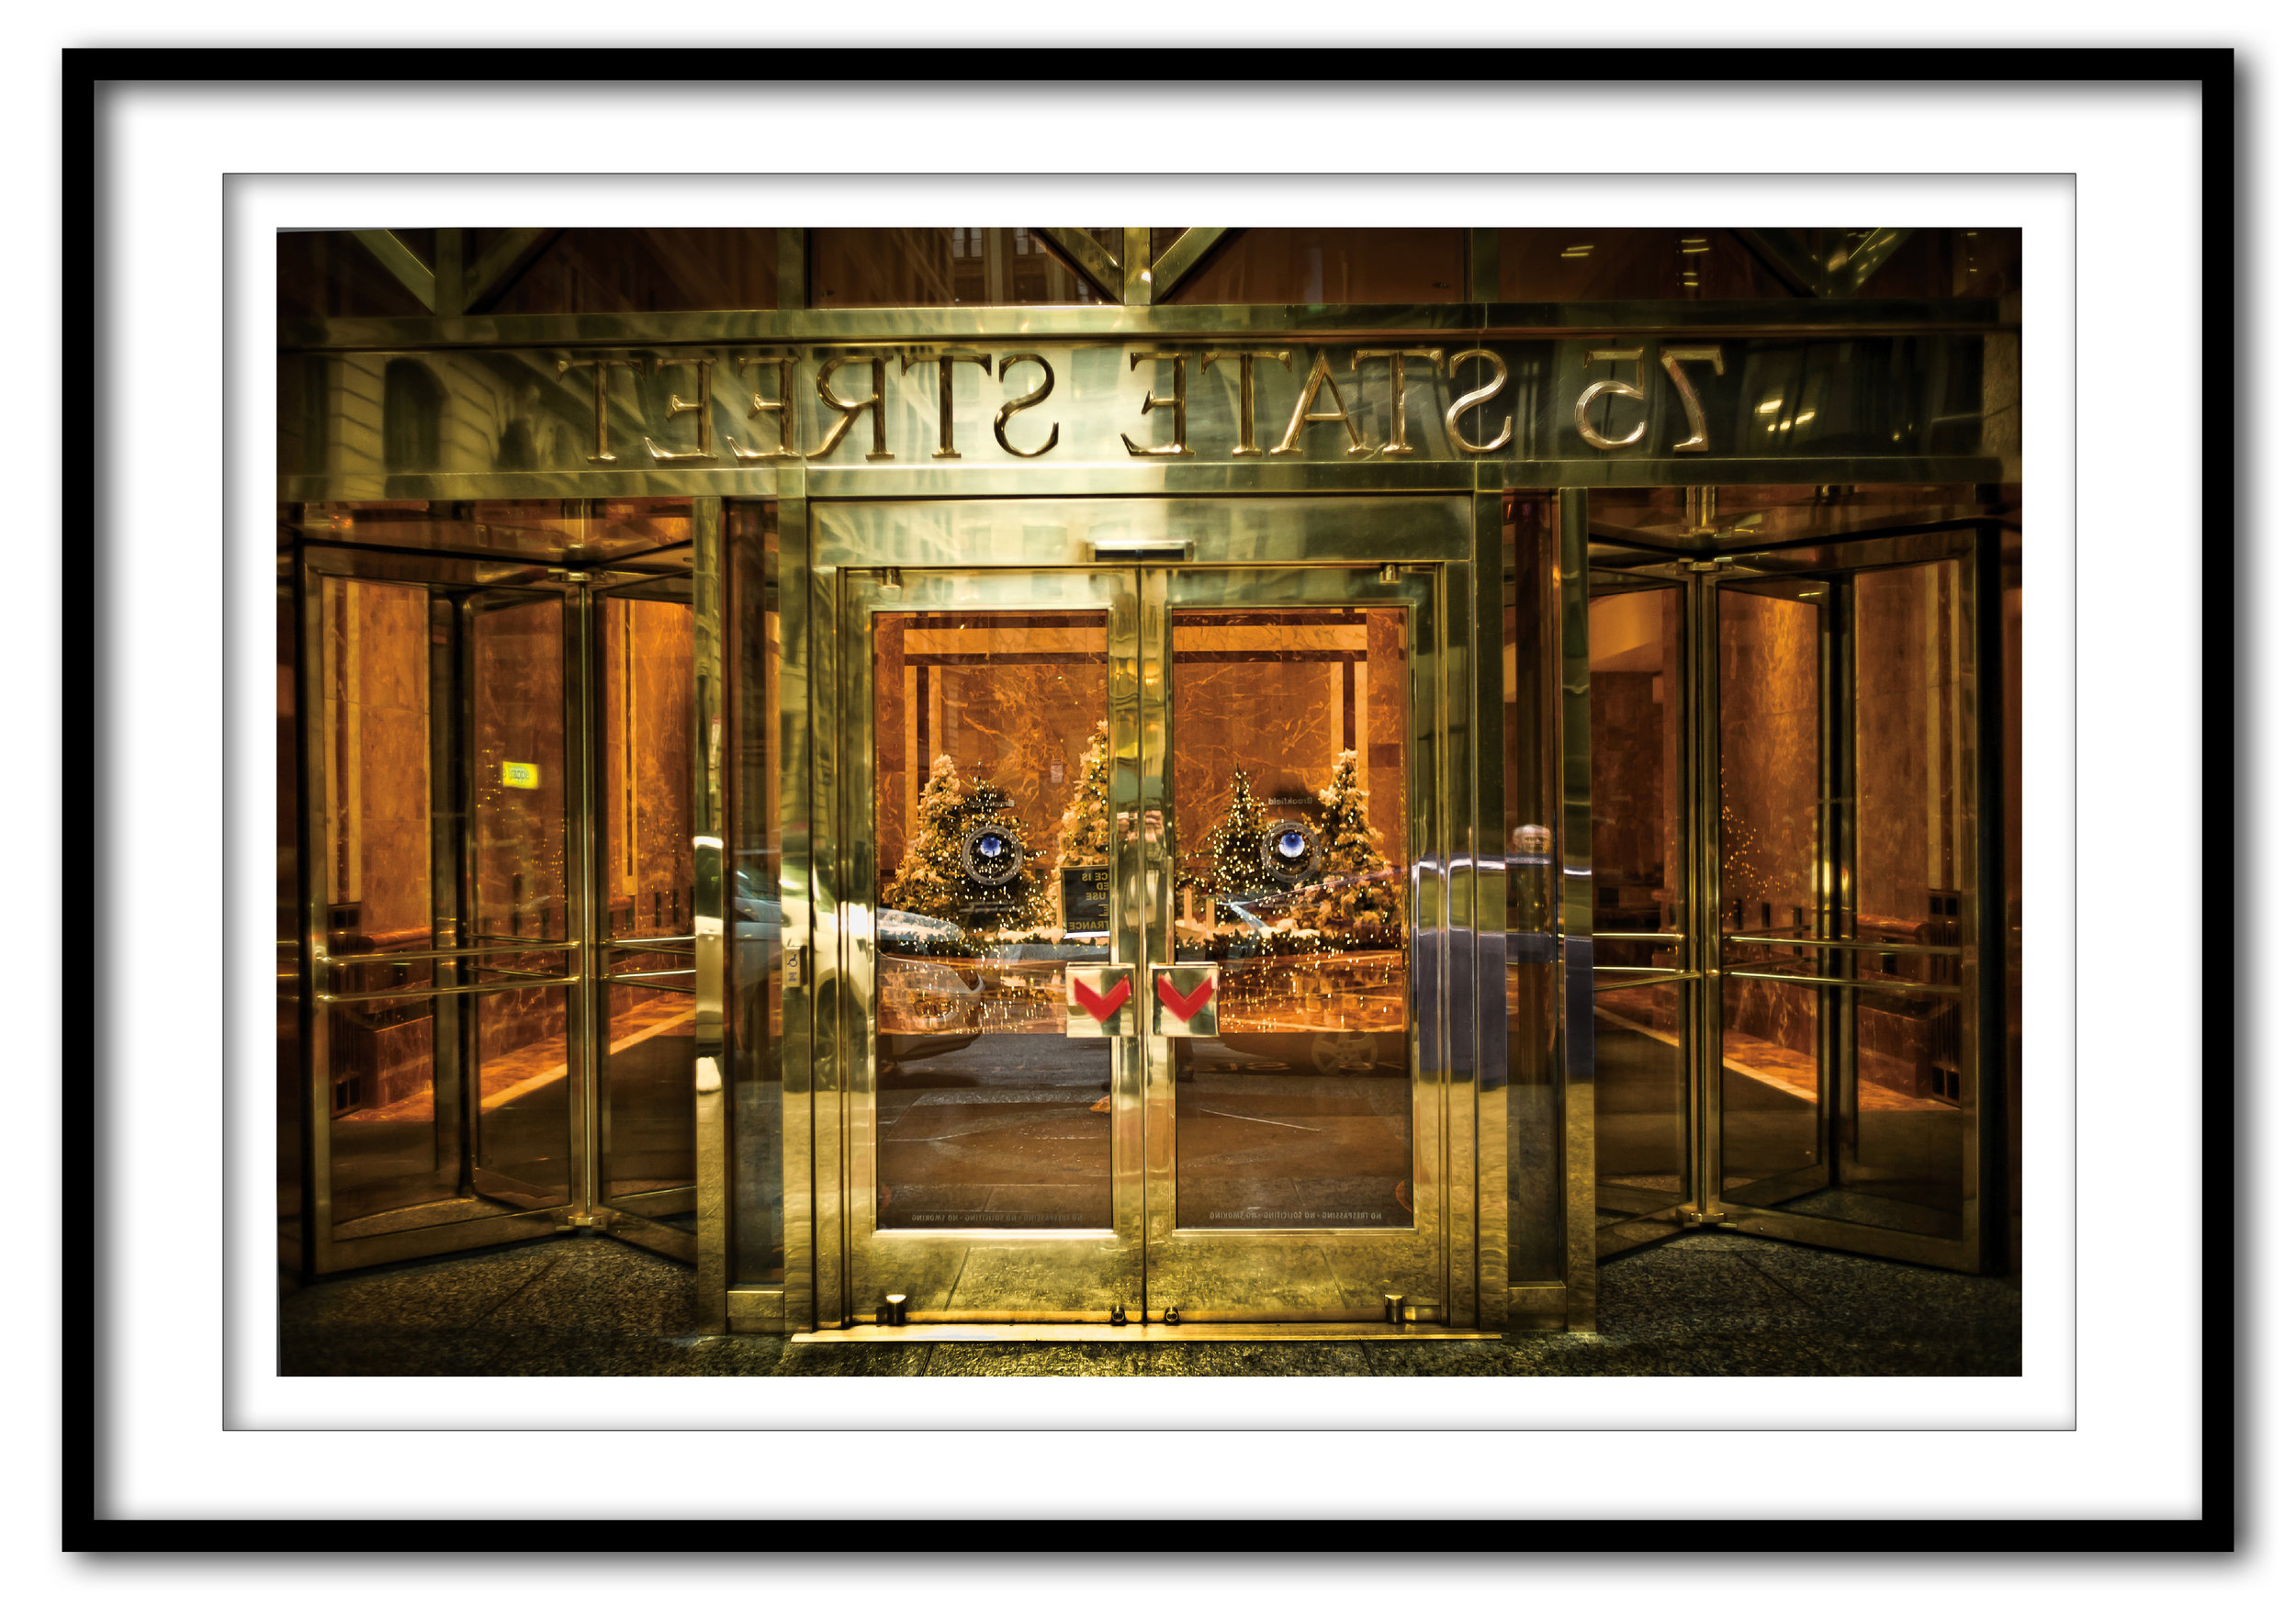 75 State Street, Boston Mystery 12.19.16 - Framed.jpg